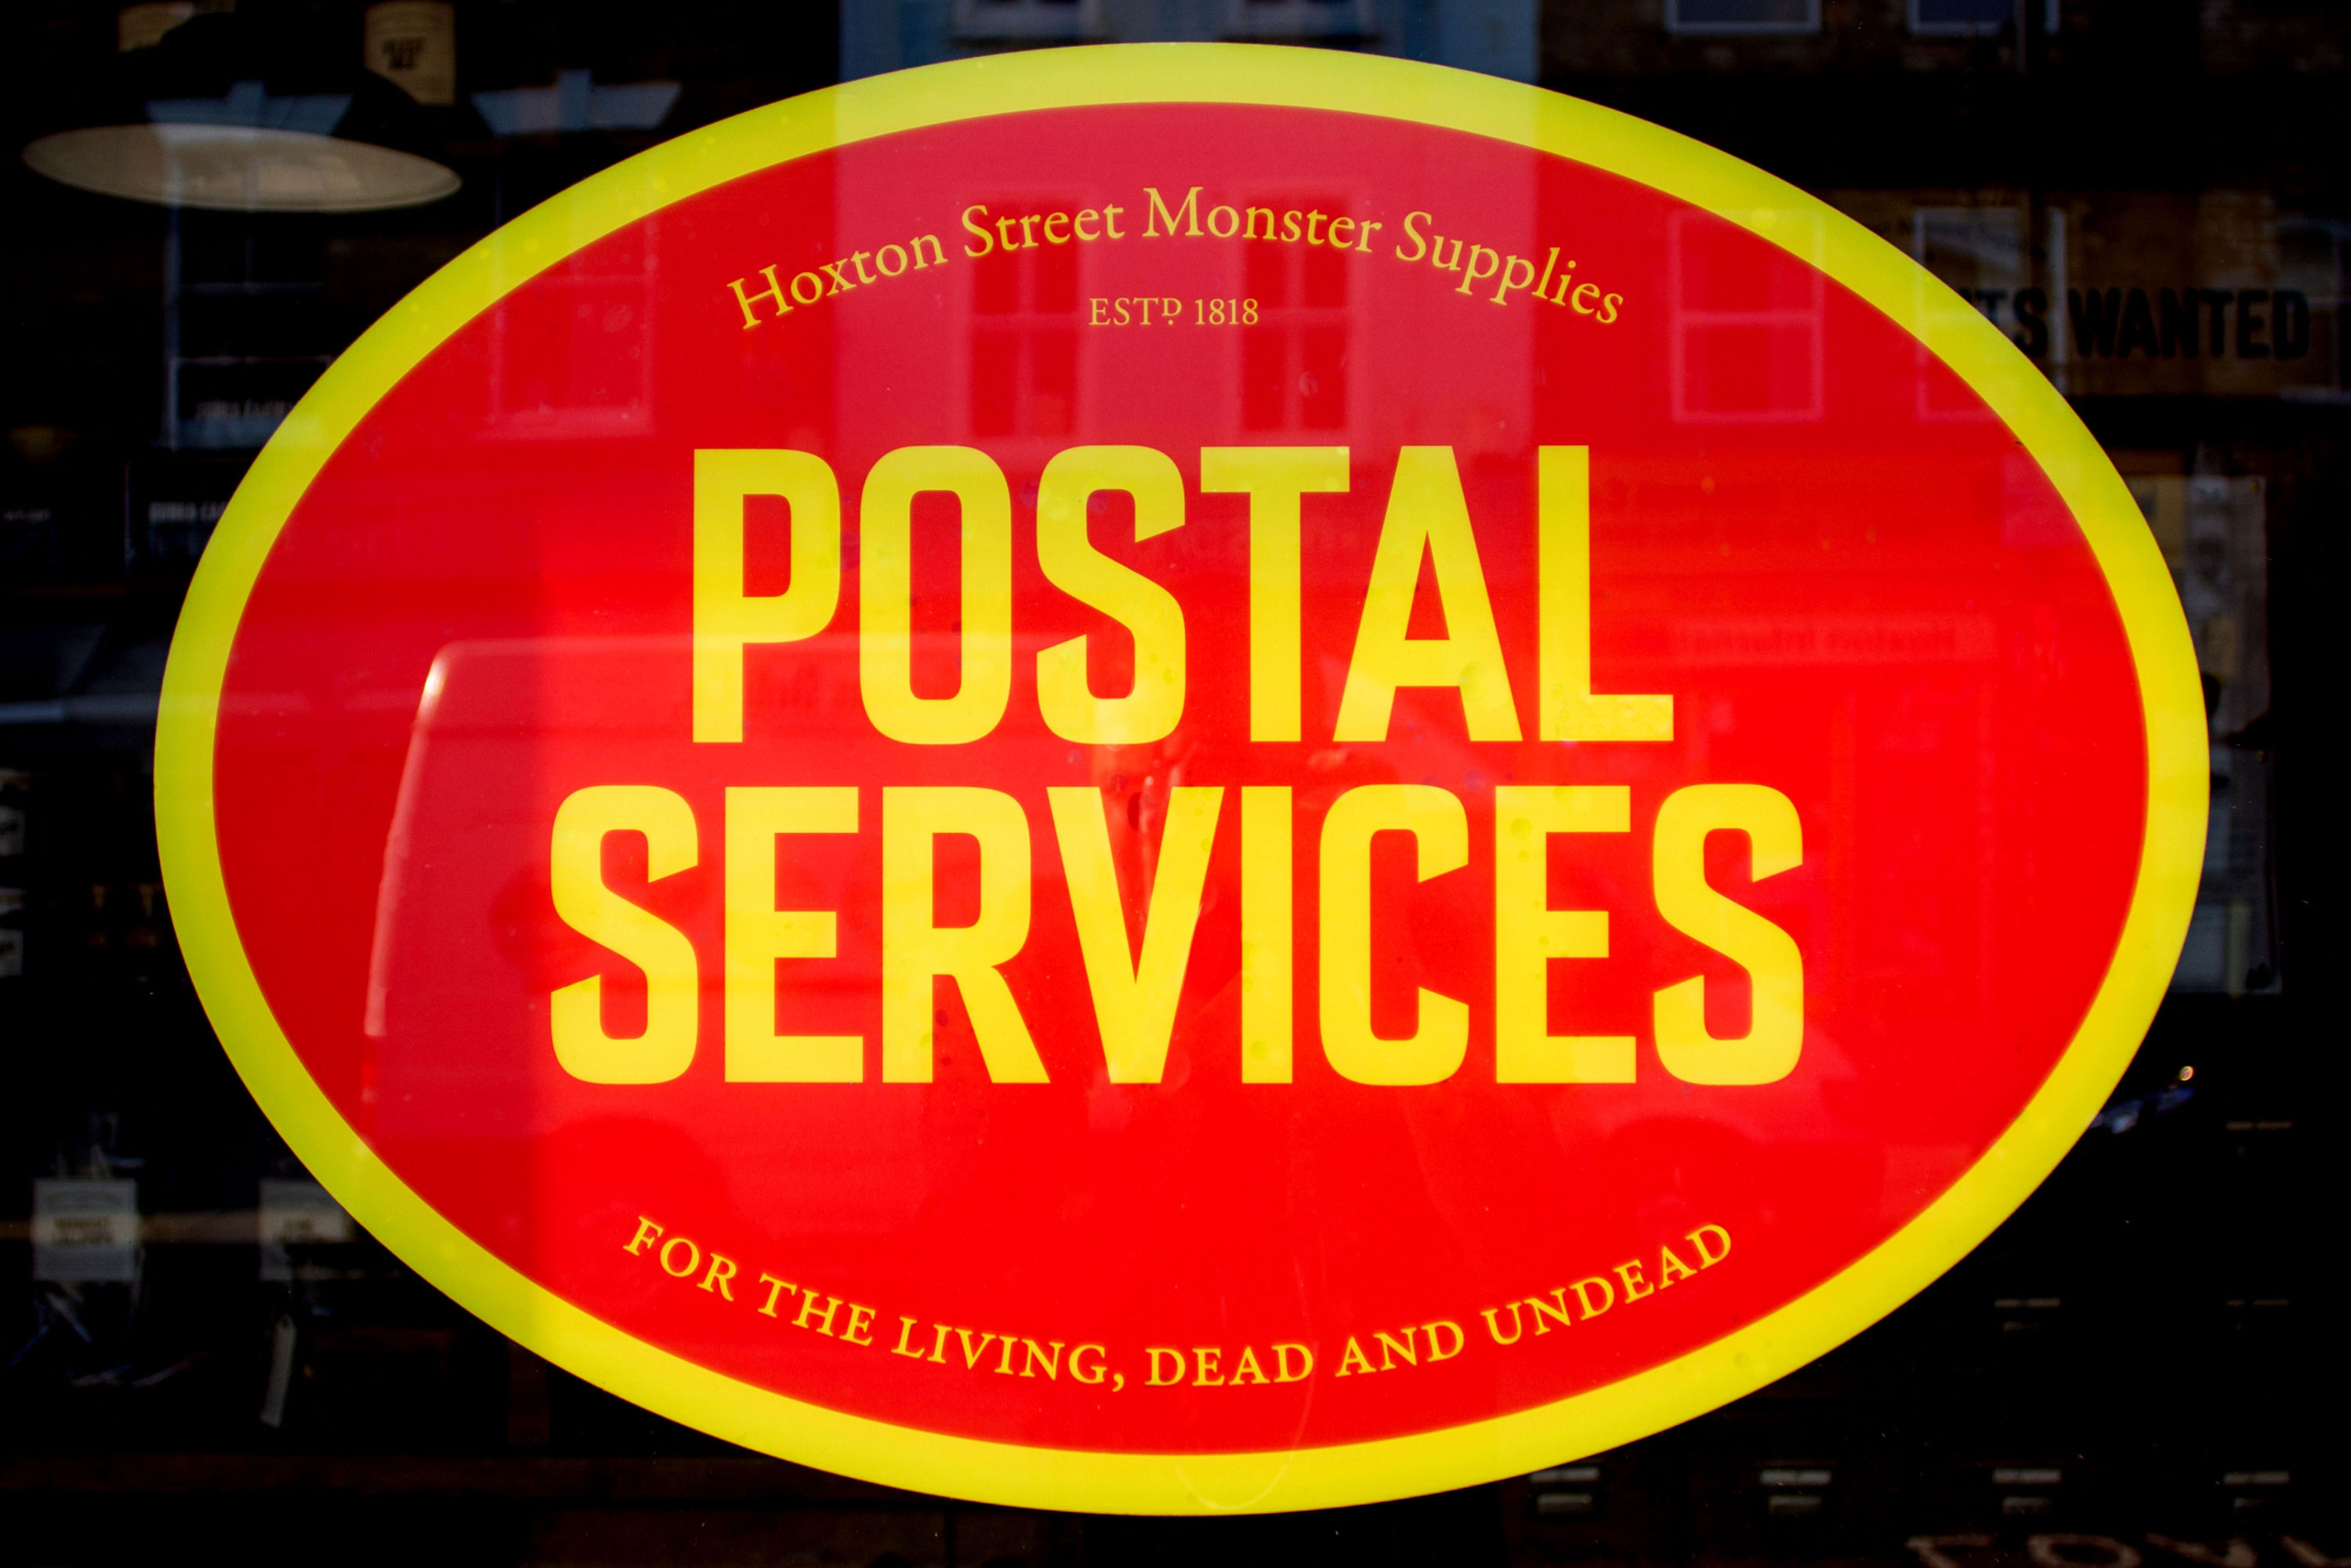 HSMS_postal_services_window_vinyl